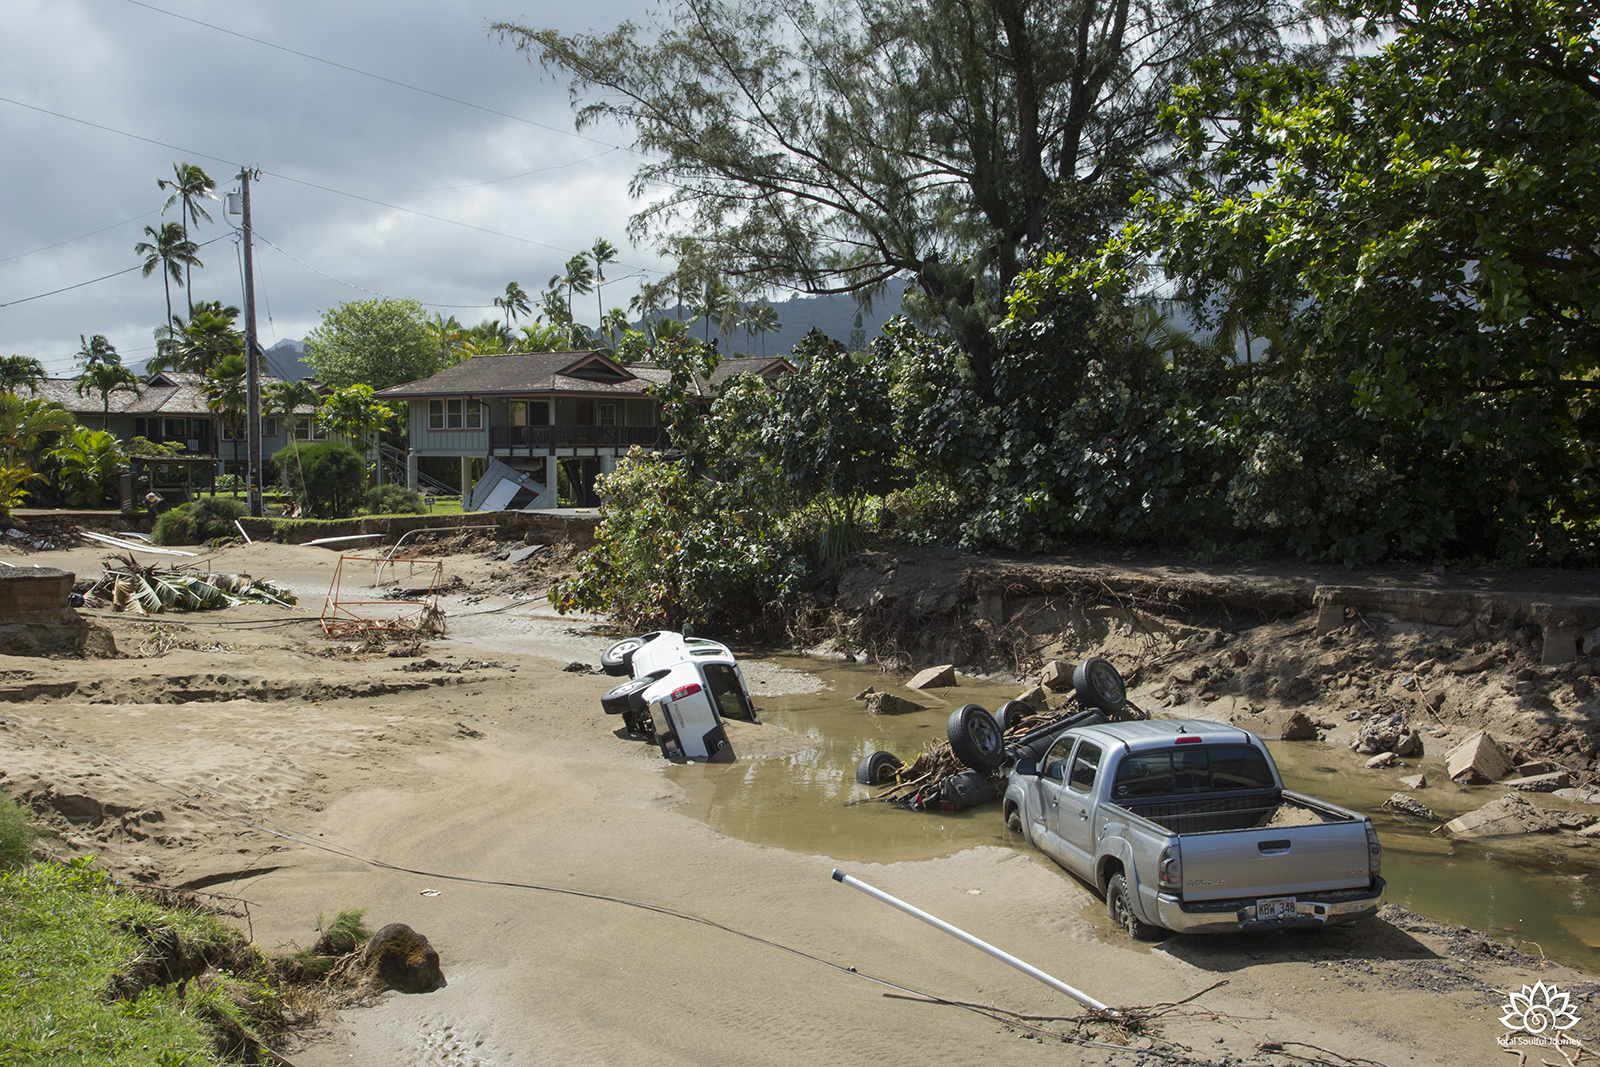 Hanalei on the island of Kauai after a flash flood took out roads and damaged cars and homes in 2018. - Photography by Paul Garrett